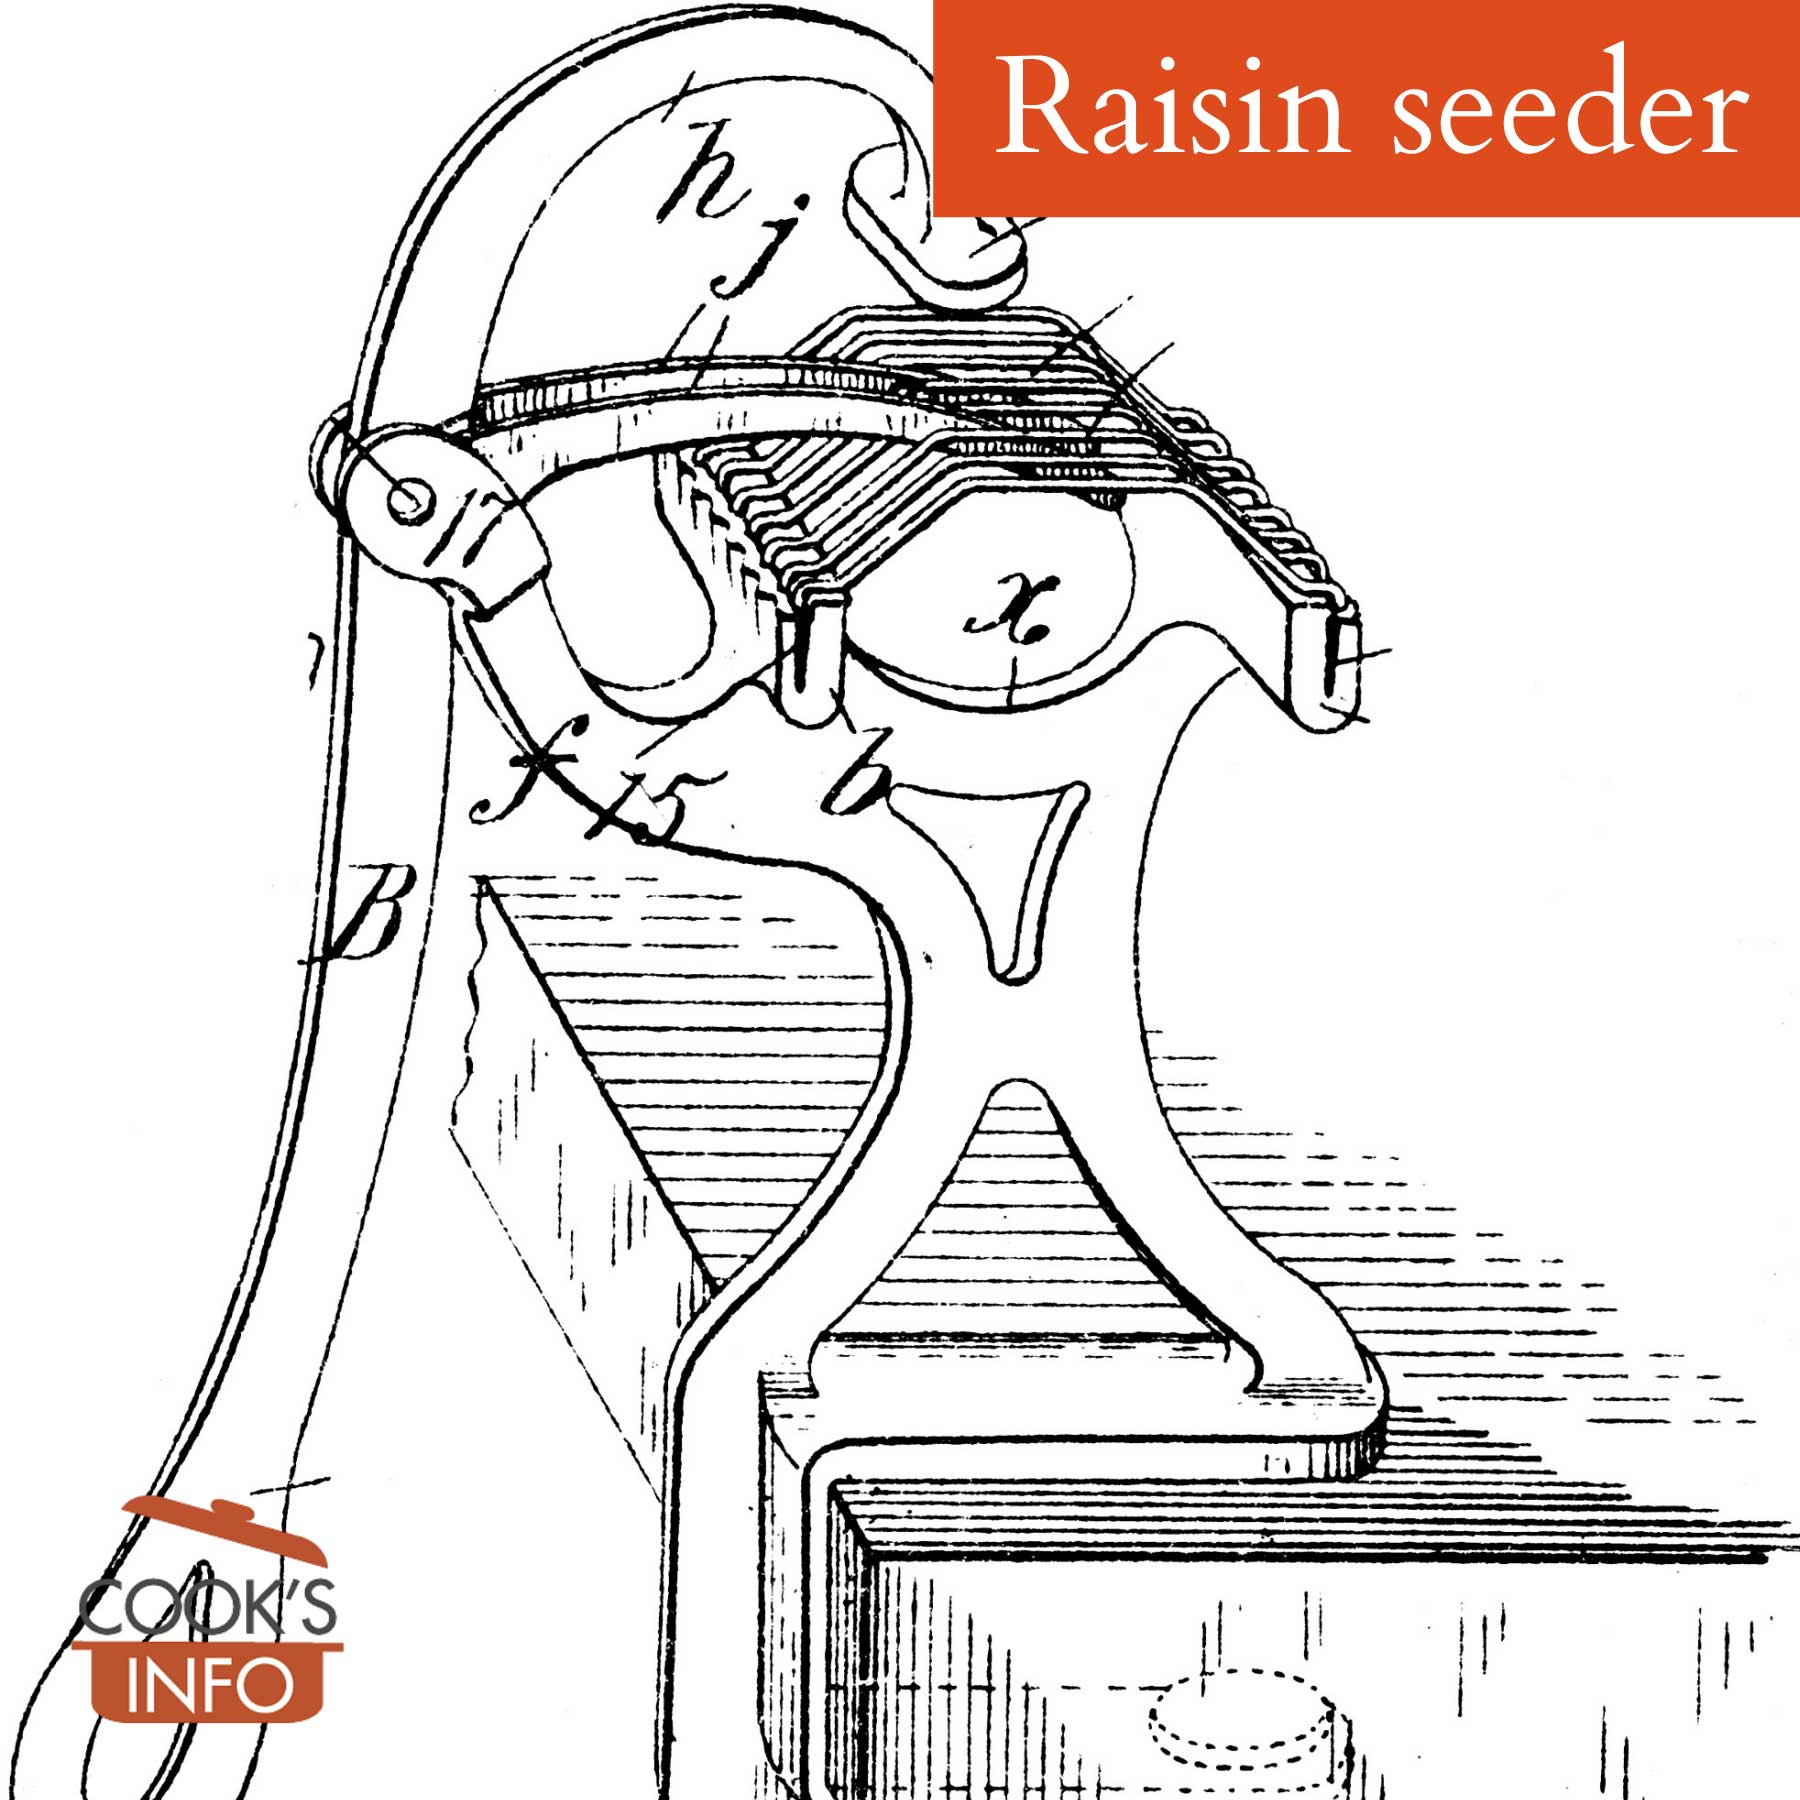 Raisin seeder